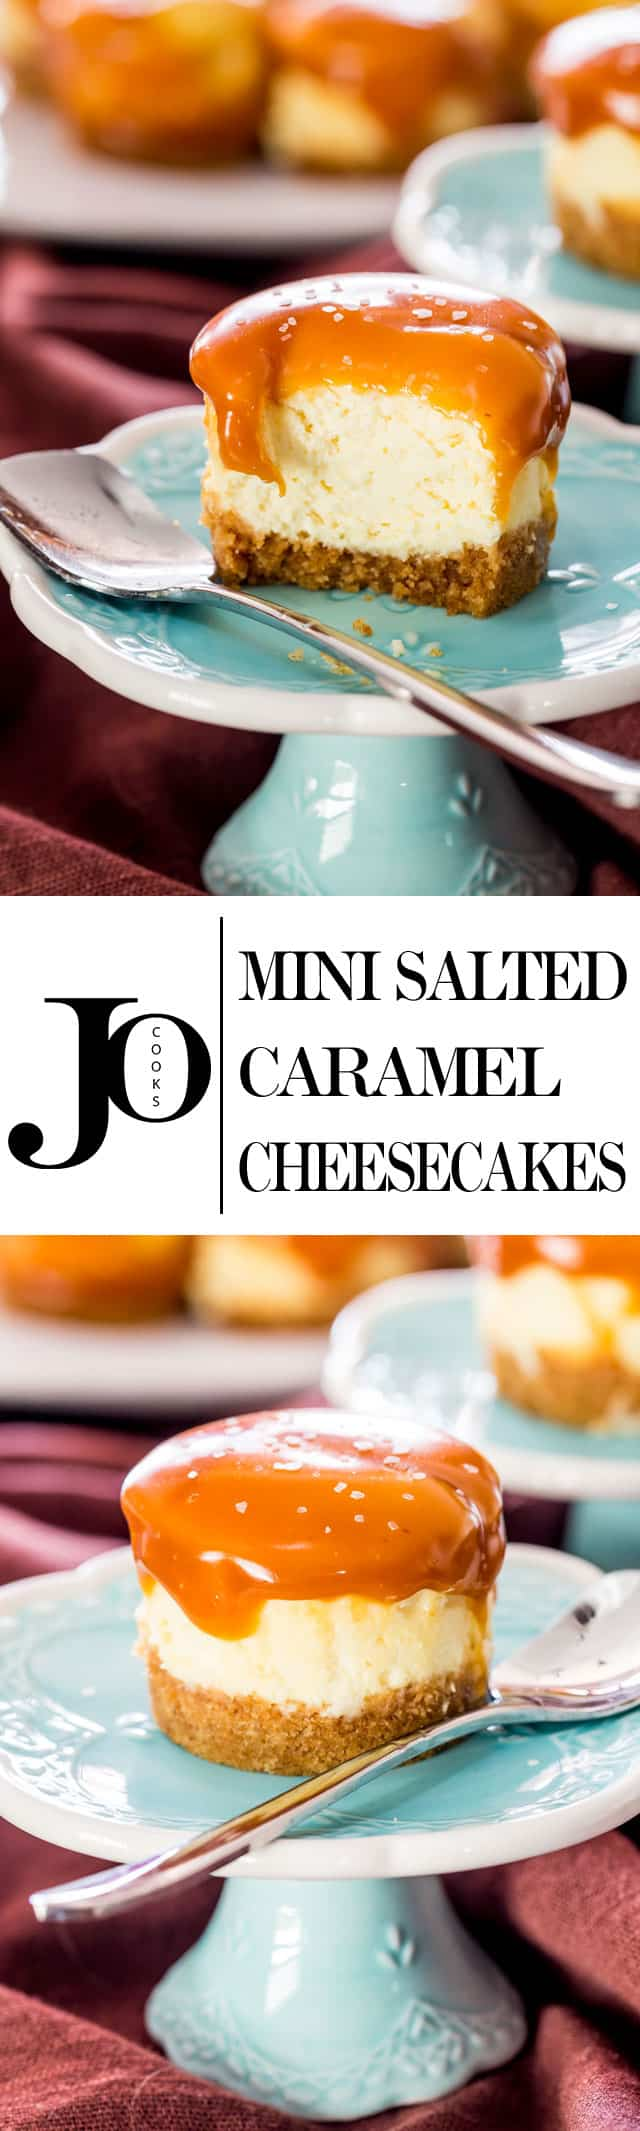 Mini Salted Caramel Cheesecakes - creamy bite-sized cheesecakes with a graham cracker crust and topped with a delicious salted caramel. www.jocooks.com #minicheesecakes